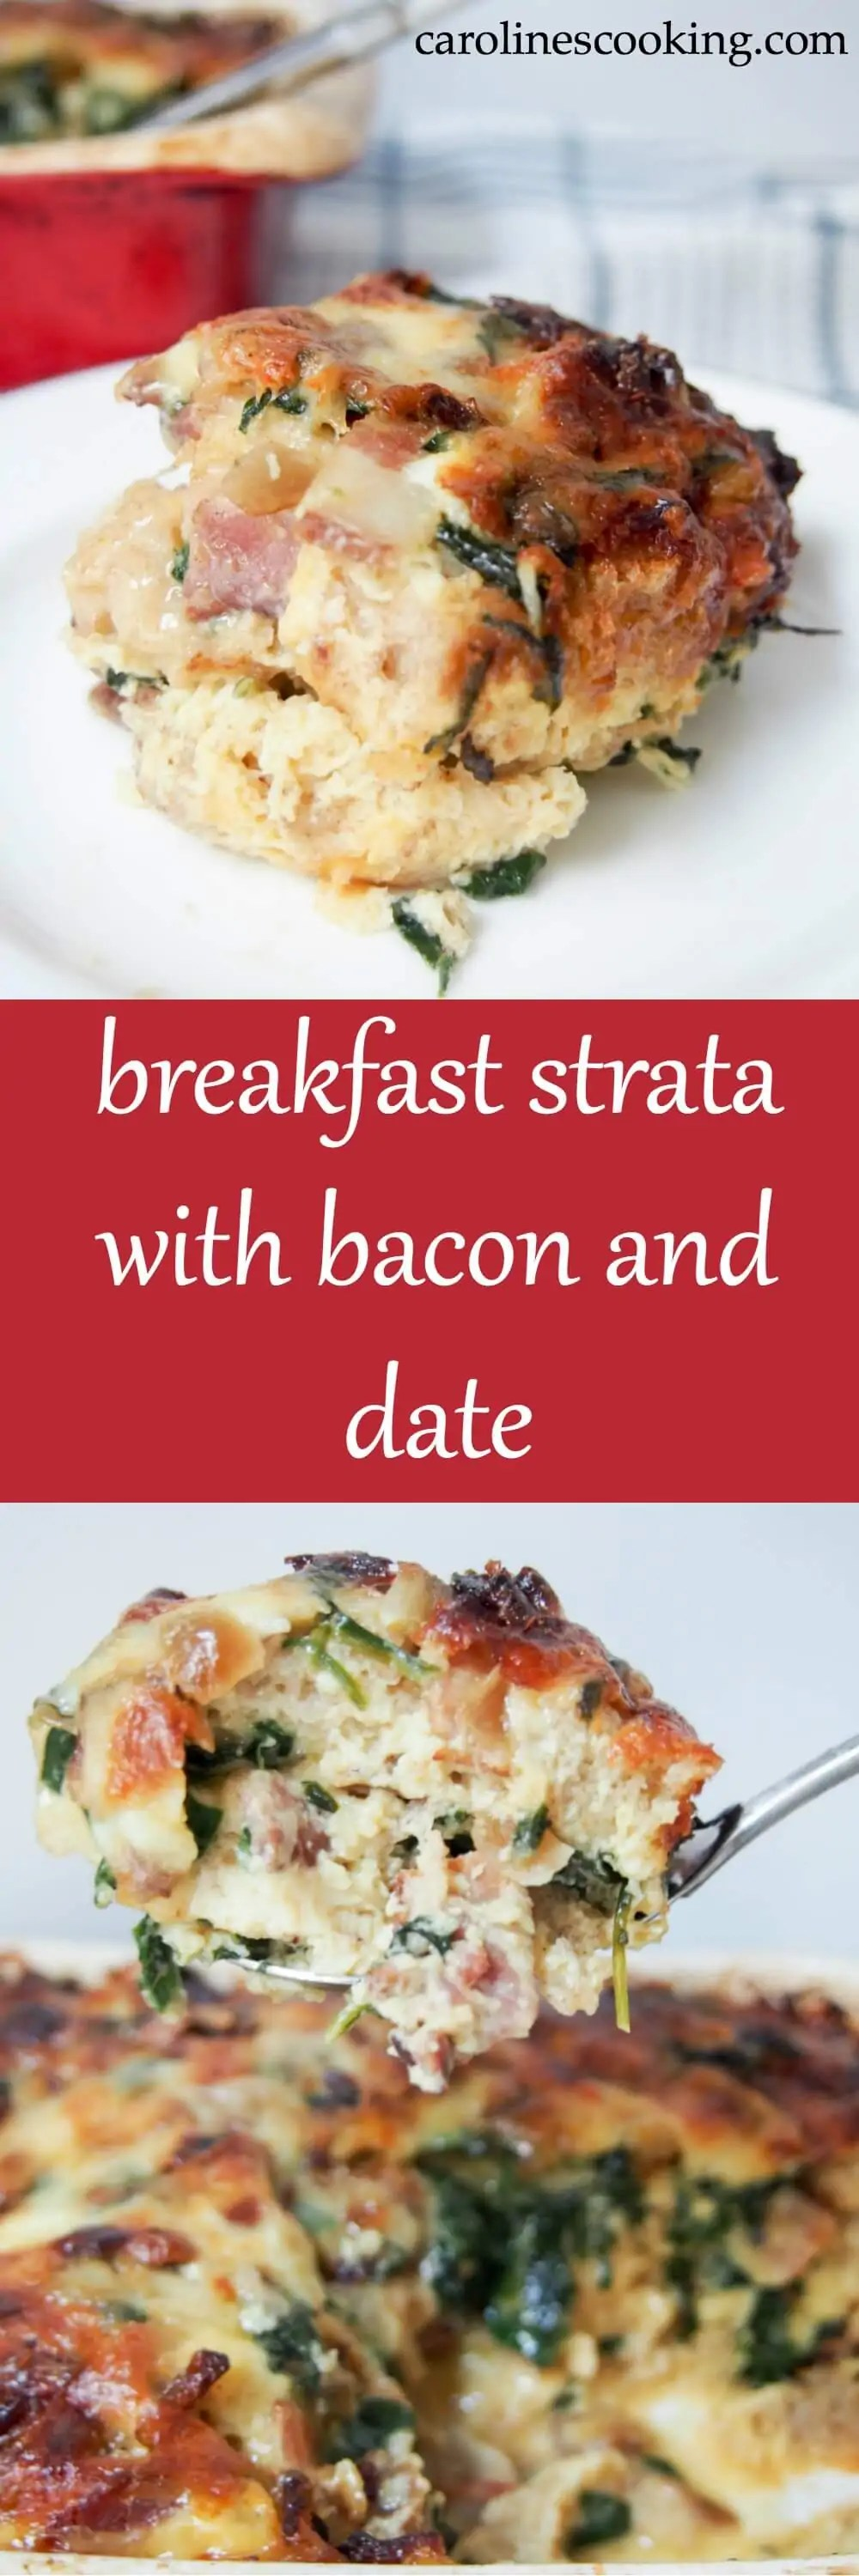 This breakfast strata with bacon and date is like a savory French toast with cheese & bacon, easy to prepare the night before for a delicious brunch/breakfast.